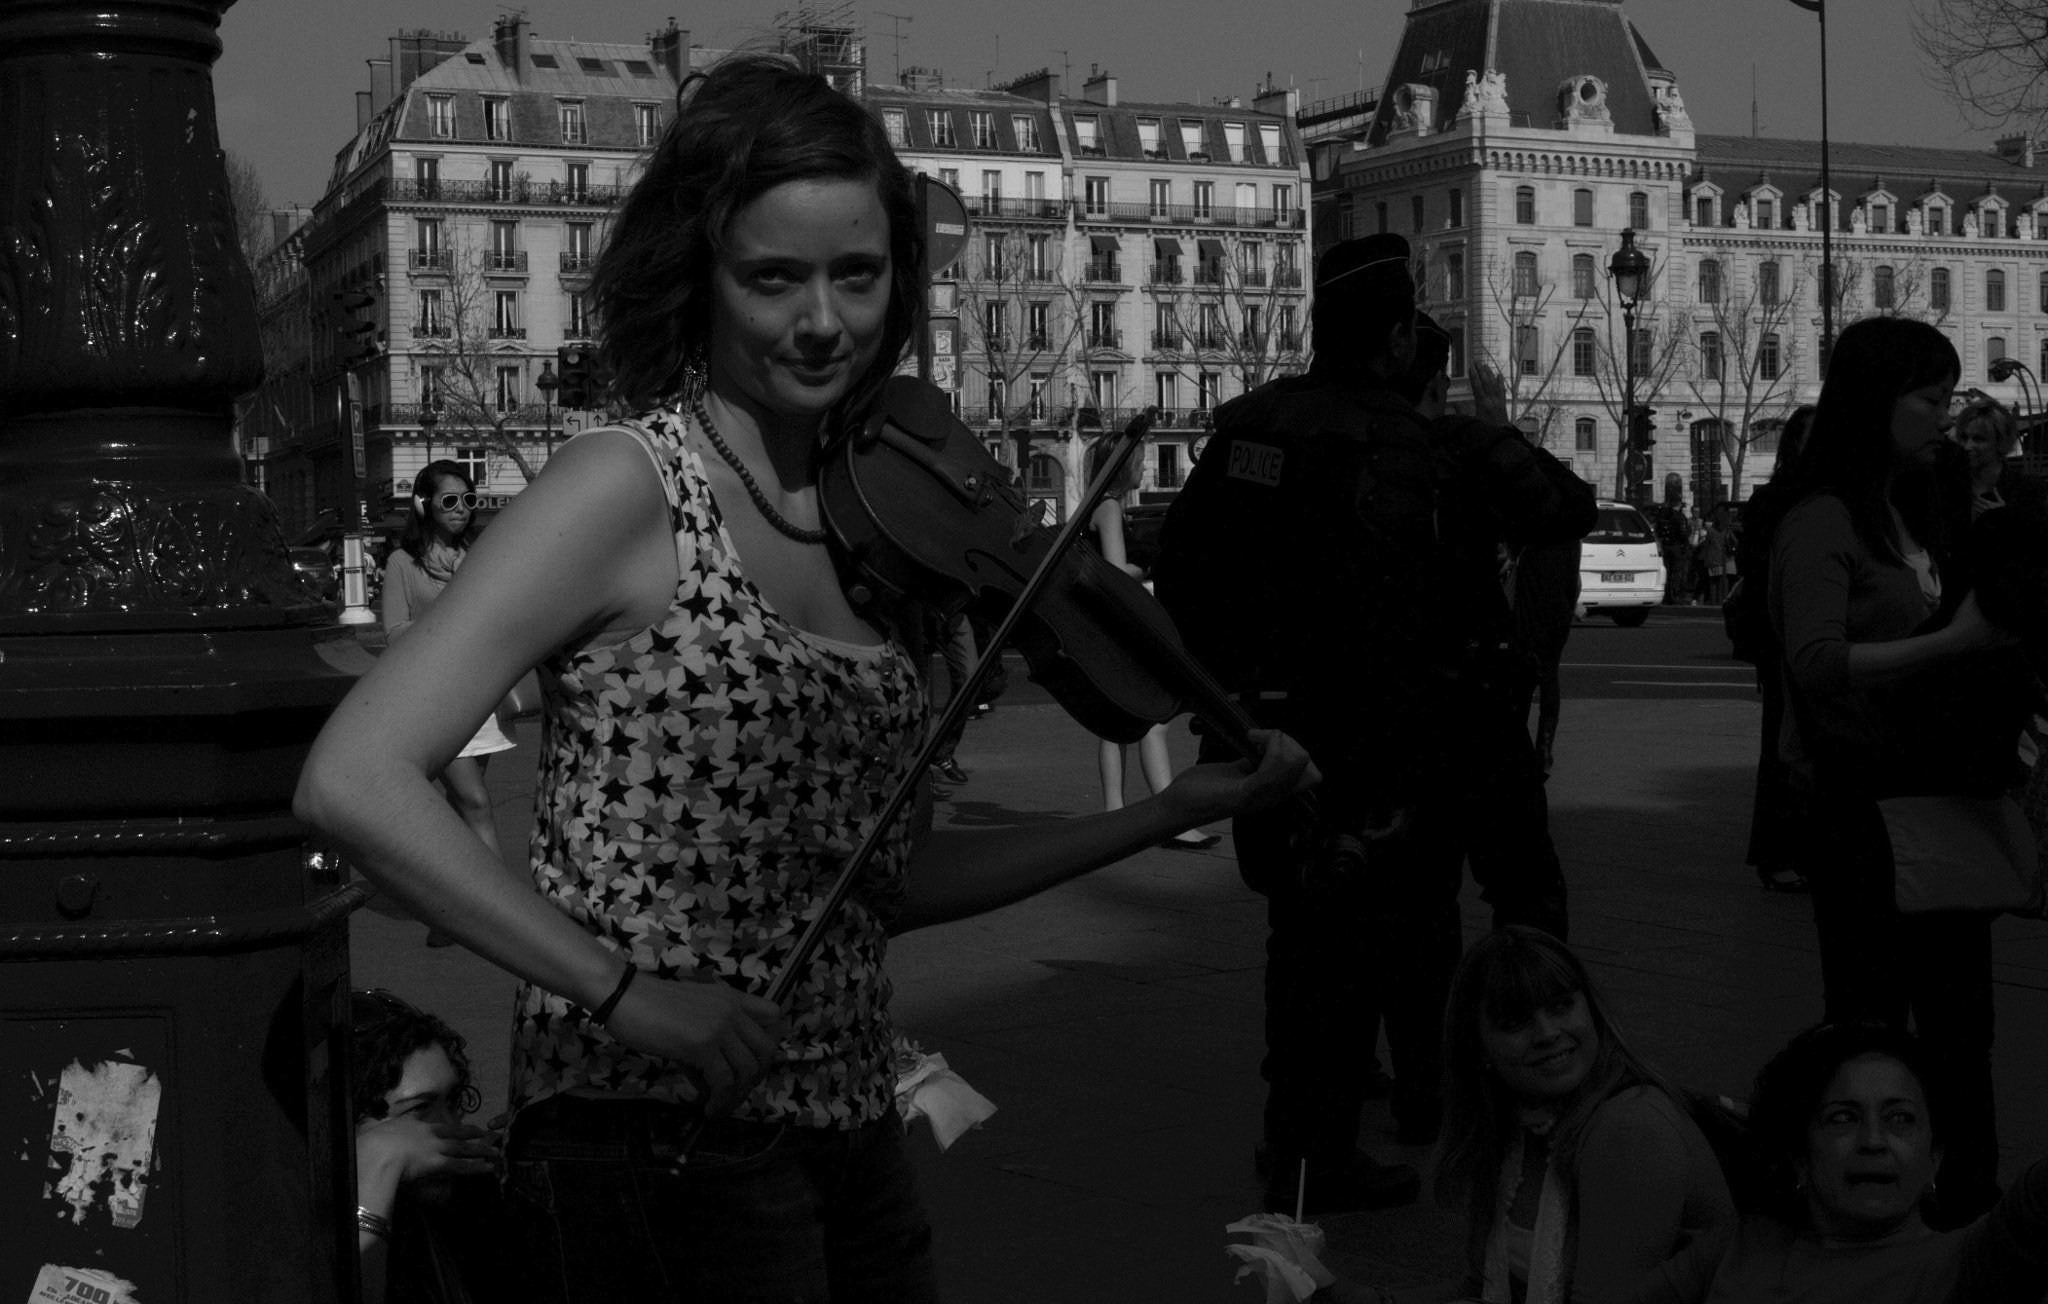 Photograph Street musician by Grazyna Letellier on 500px